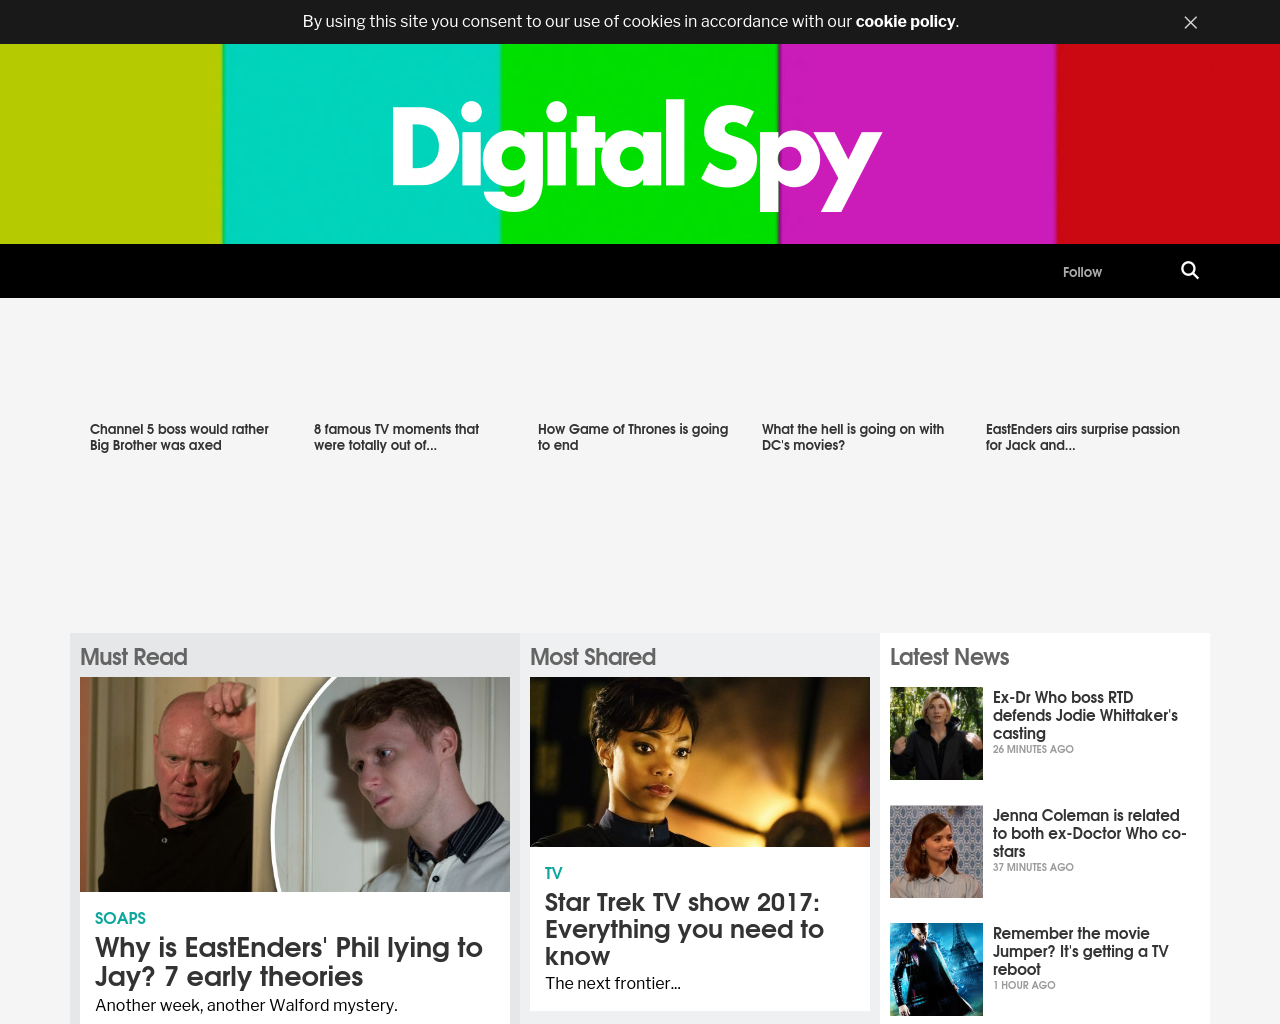 Digital-Spy-Advertising-Reviews-Pricing